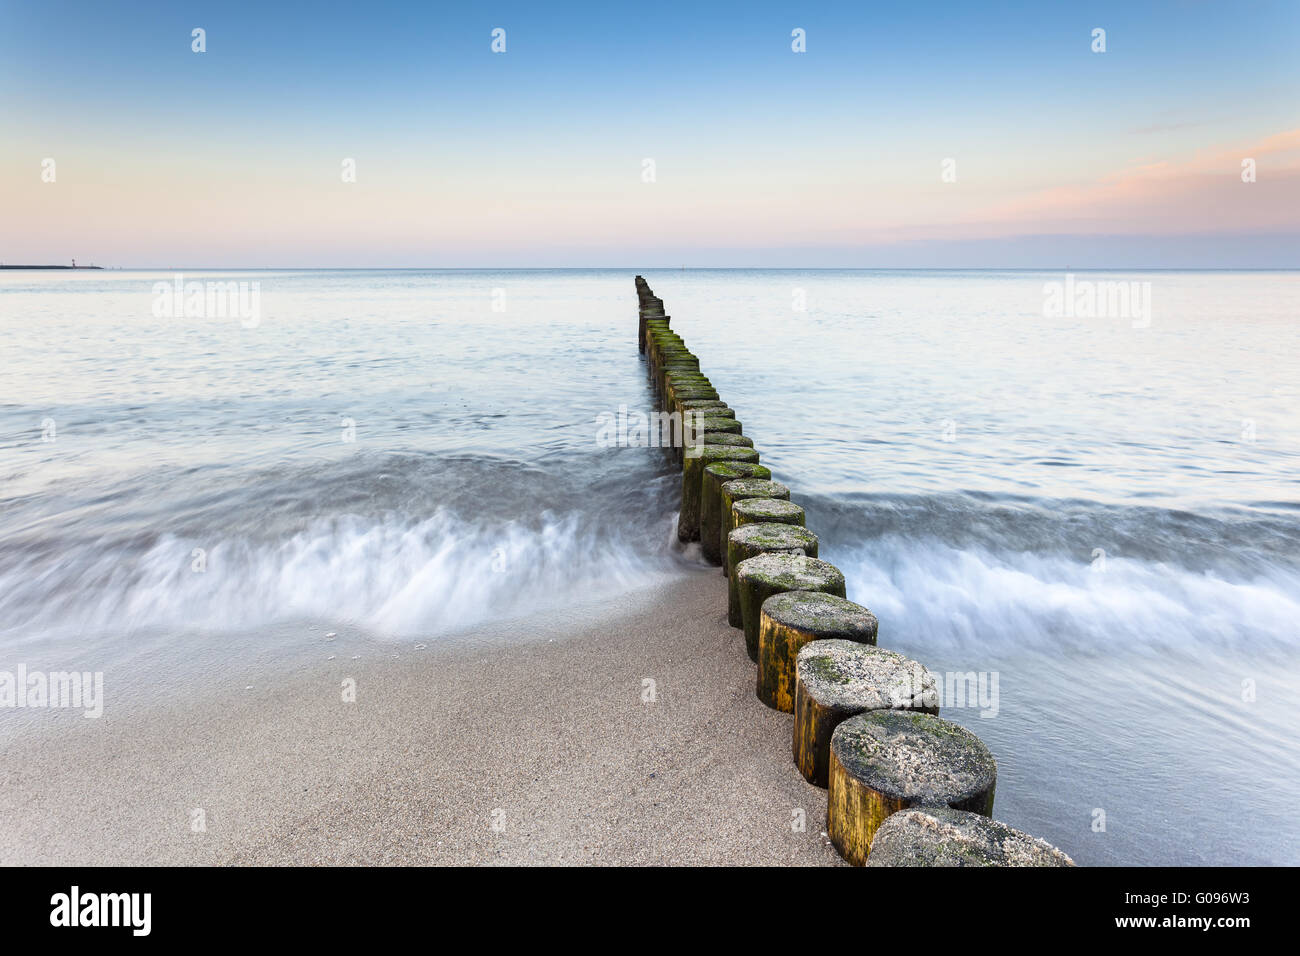 wooden groynes at the beach of german baltic sea - Stock Image